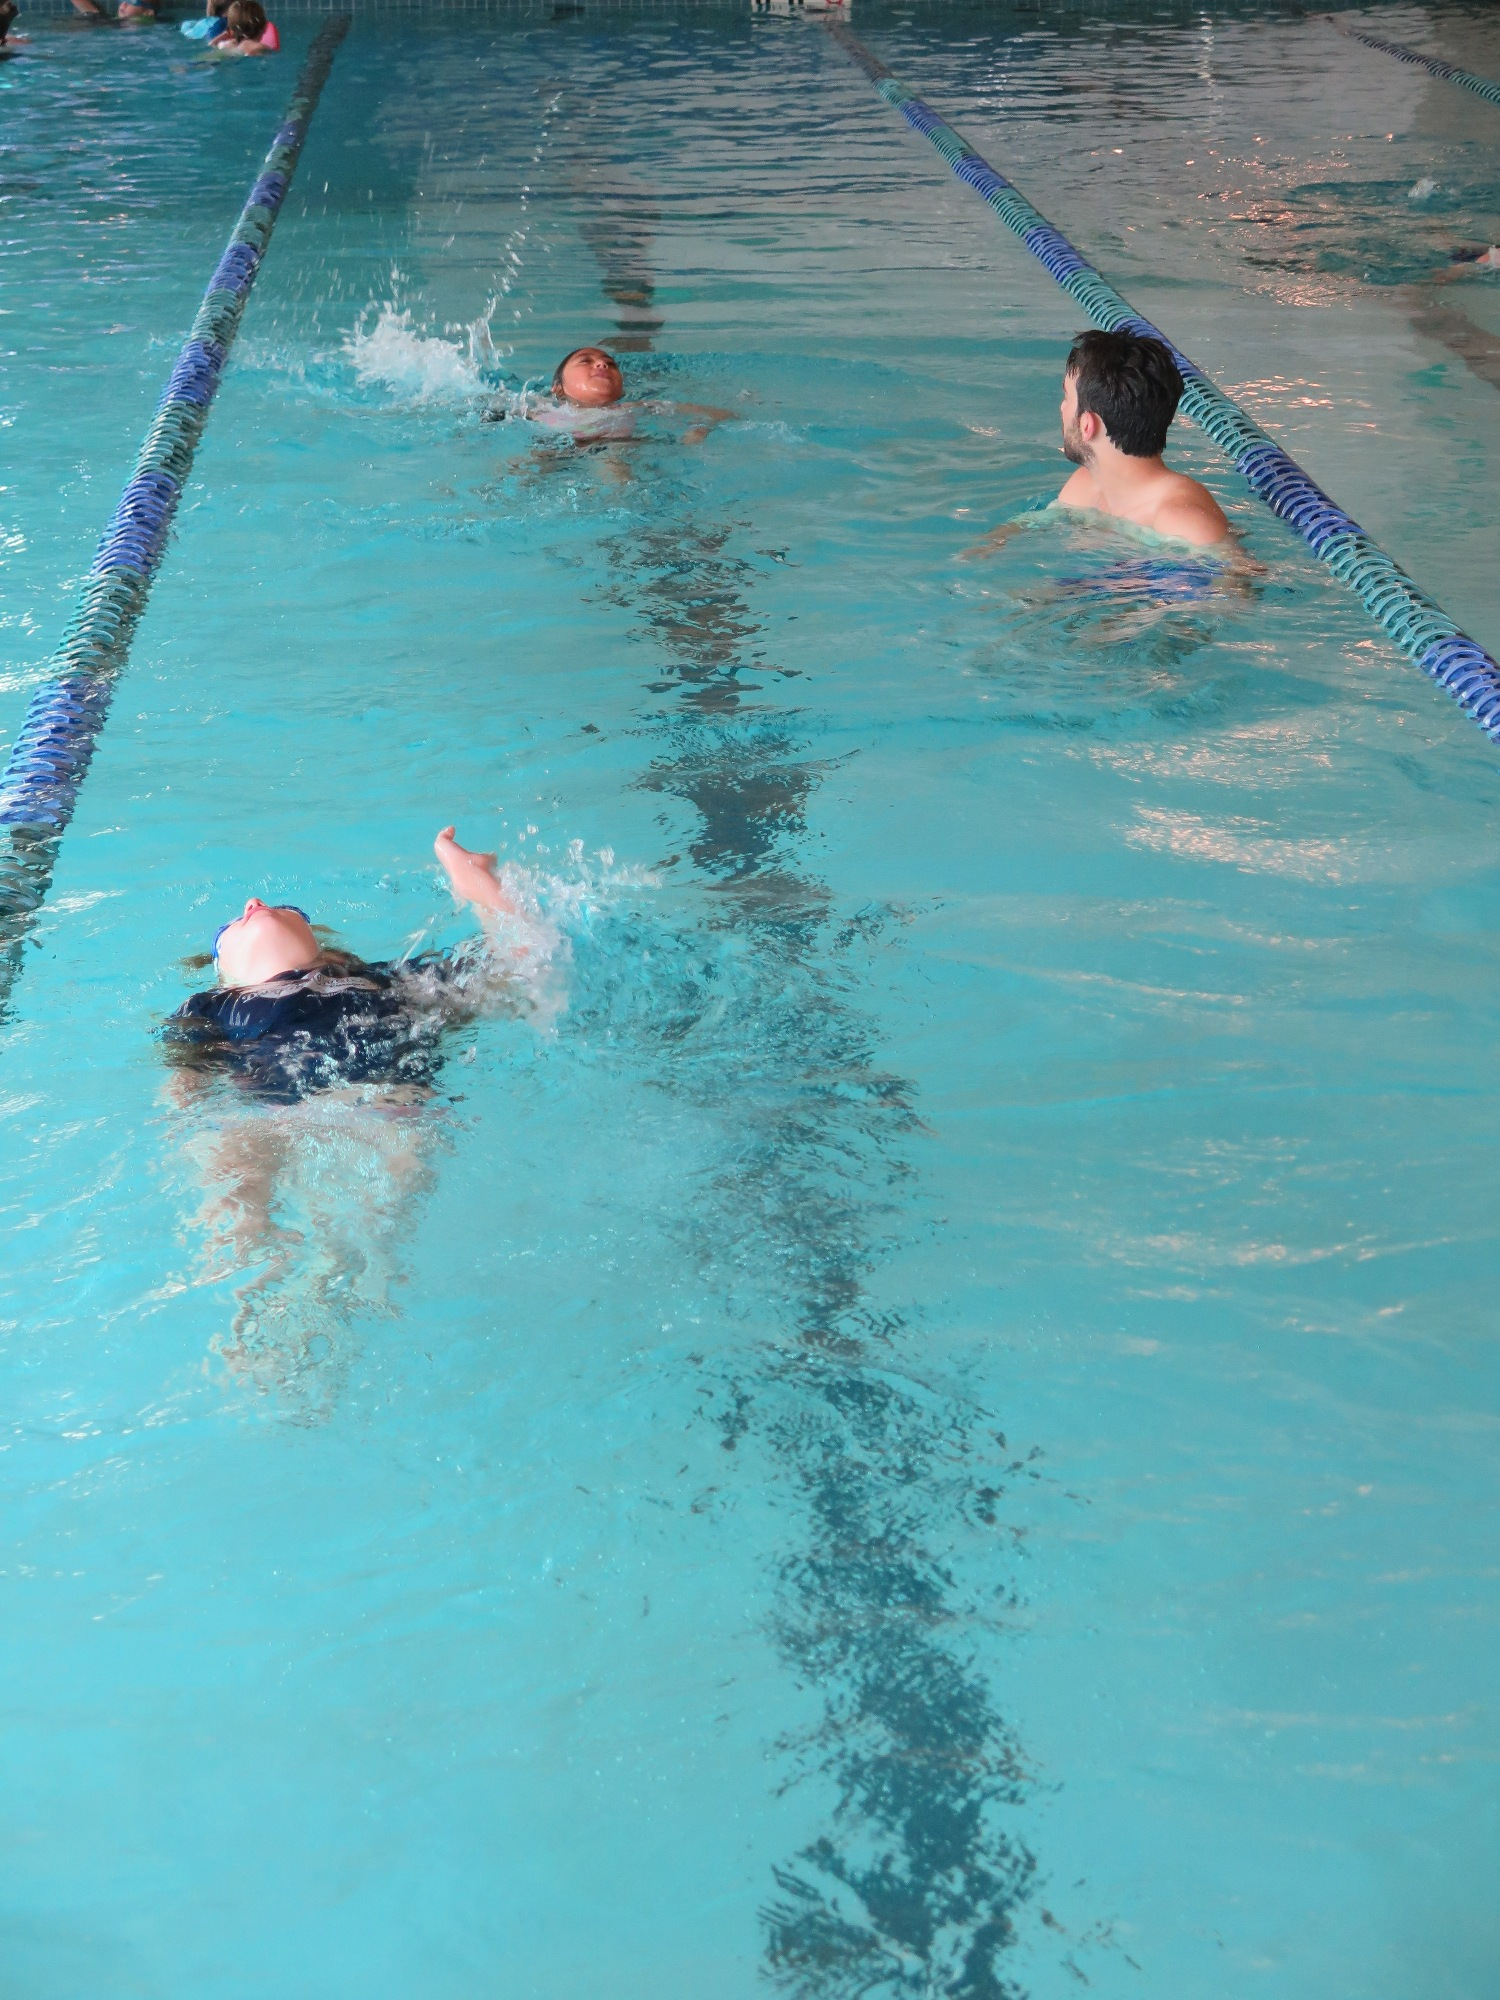 Two backstroking swimmers in pool lane with instructor